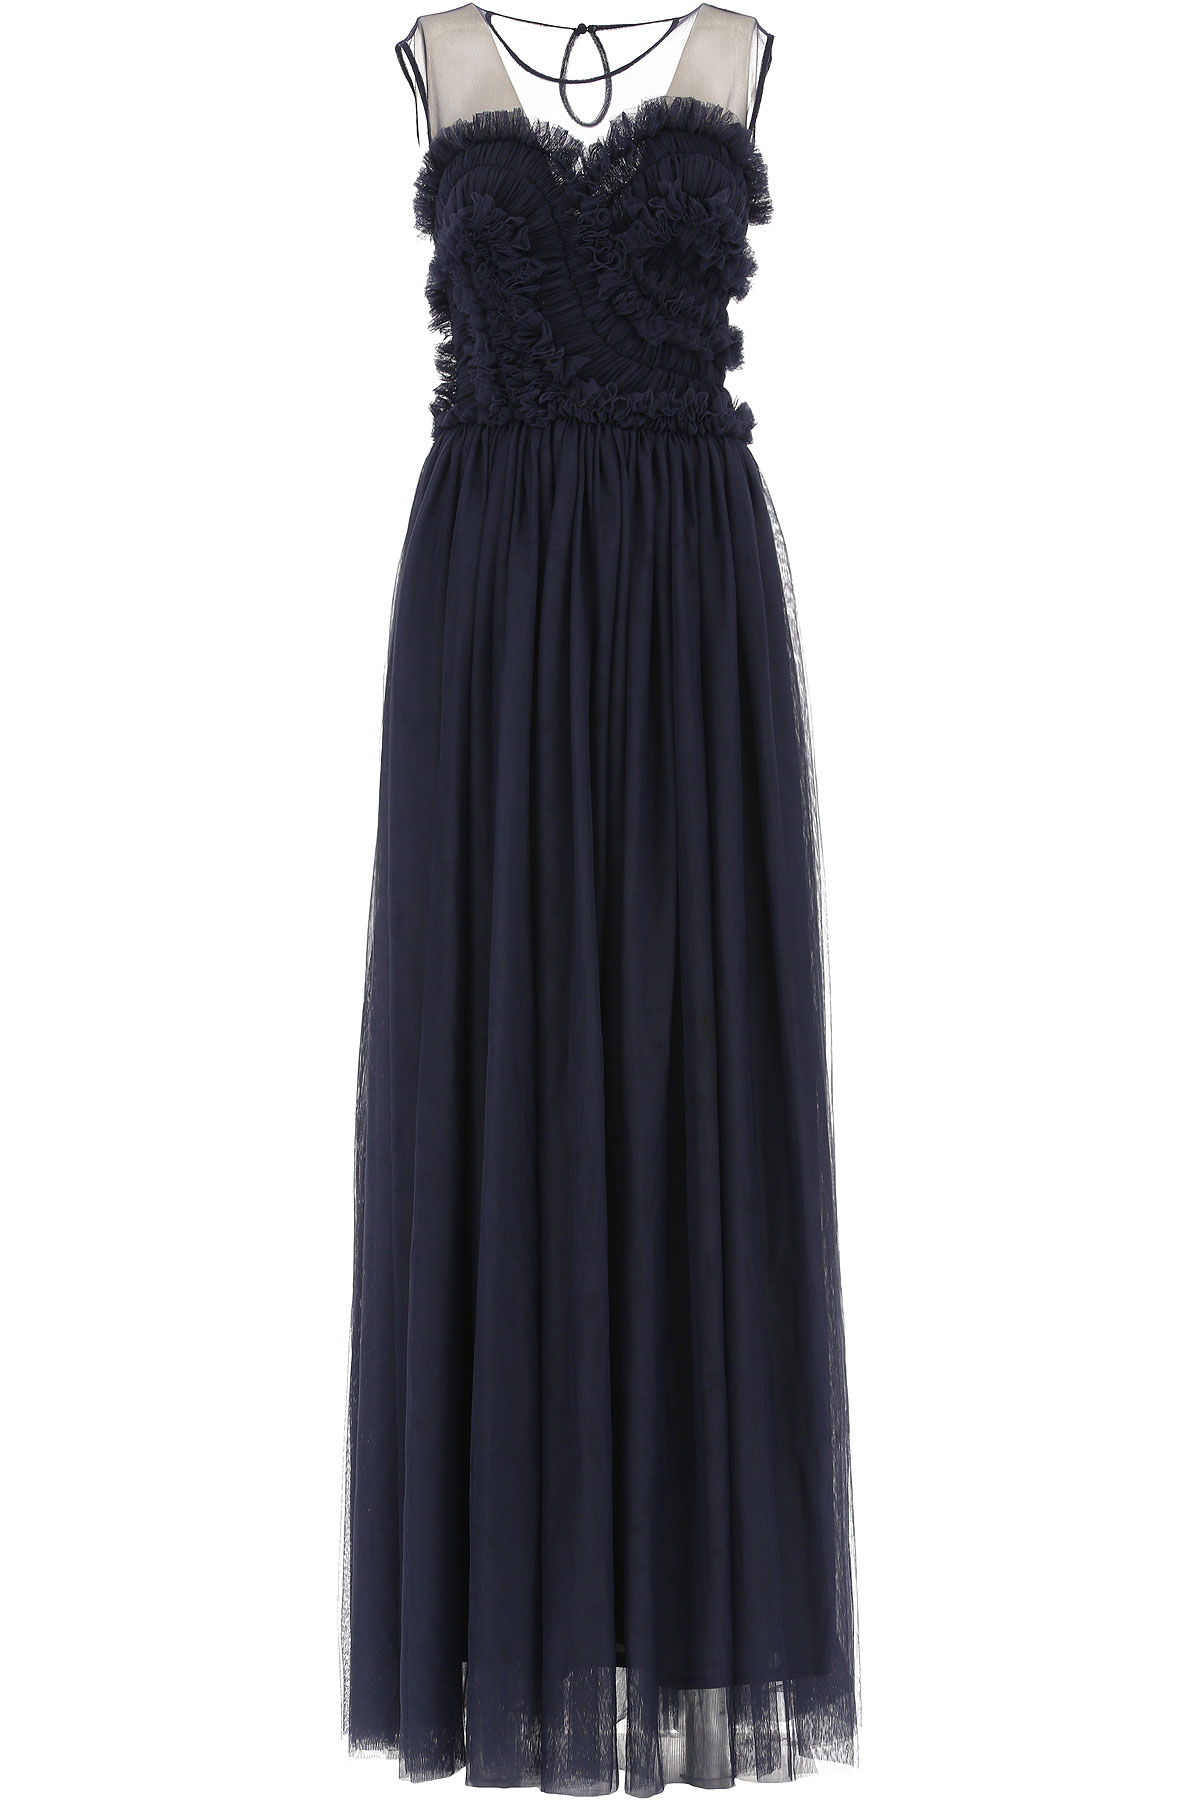 Image of P.A.R.O.S.H. Dress for Women, Evening Cocktail Party, navy, polyester, 2017, 2 4 6